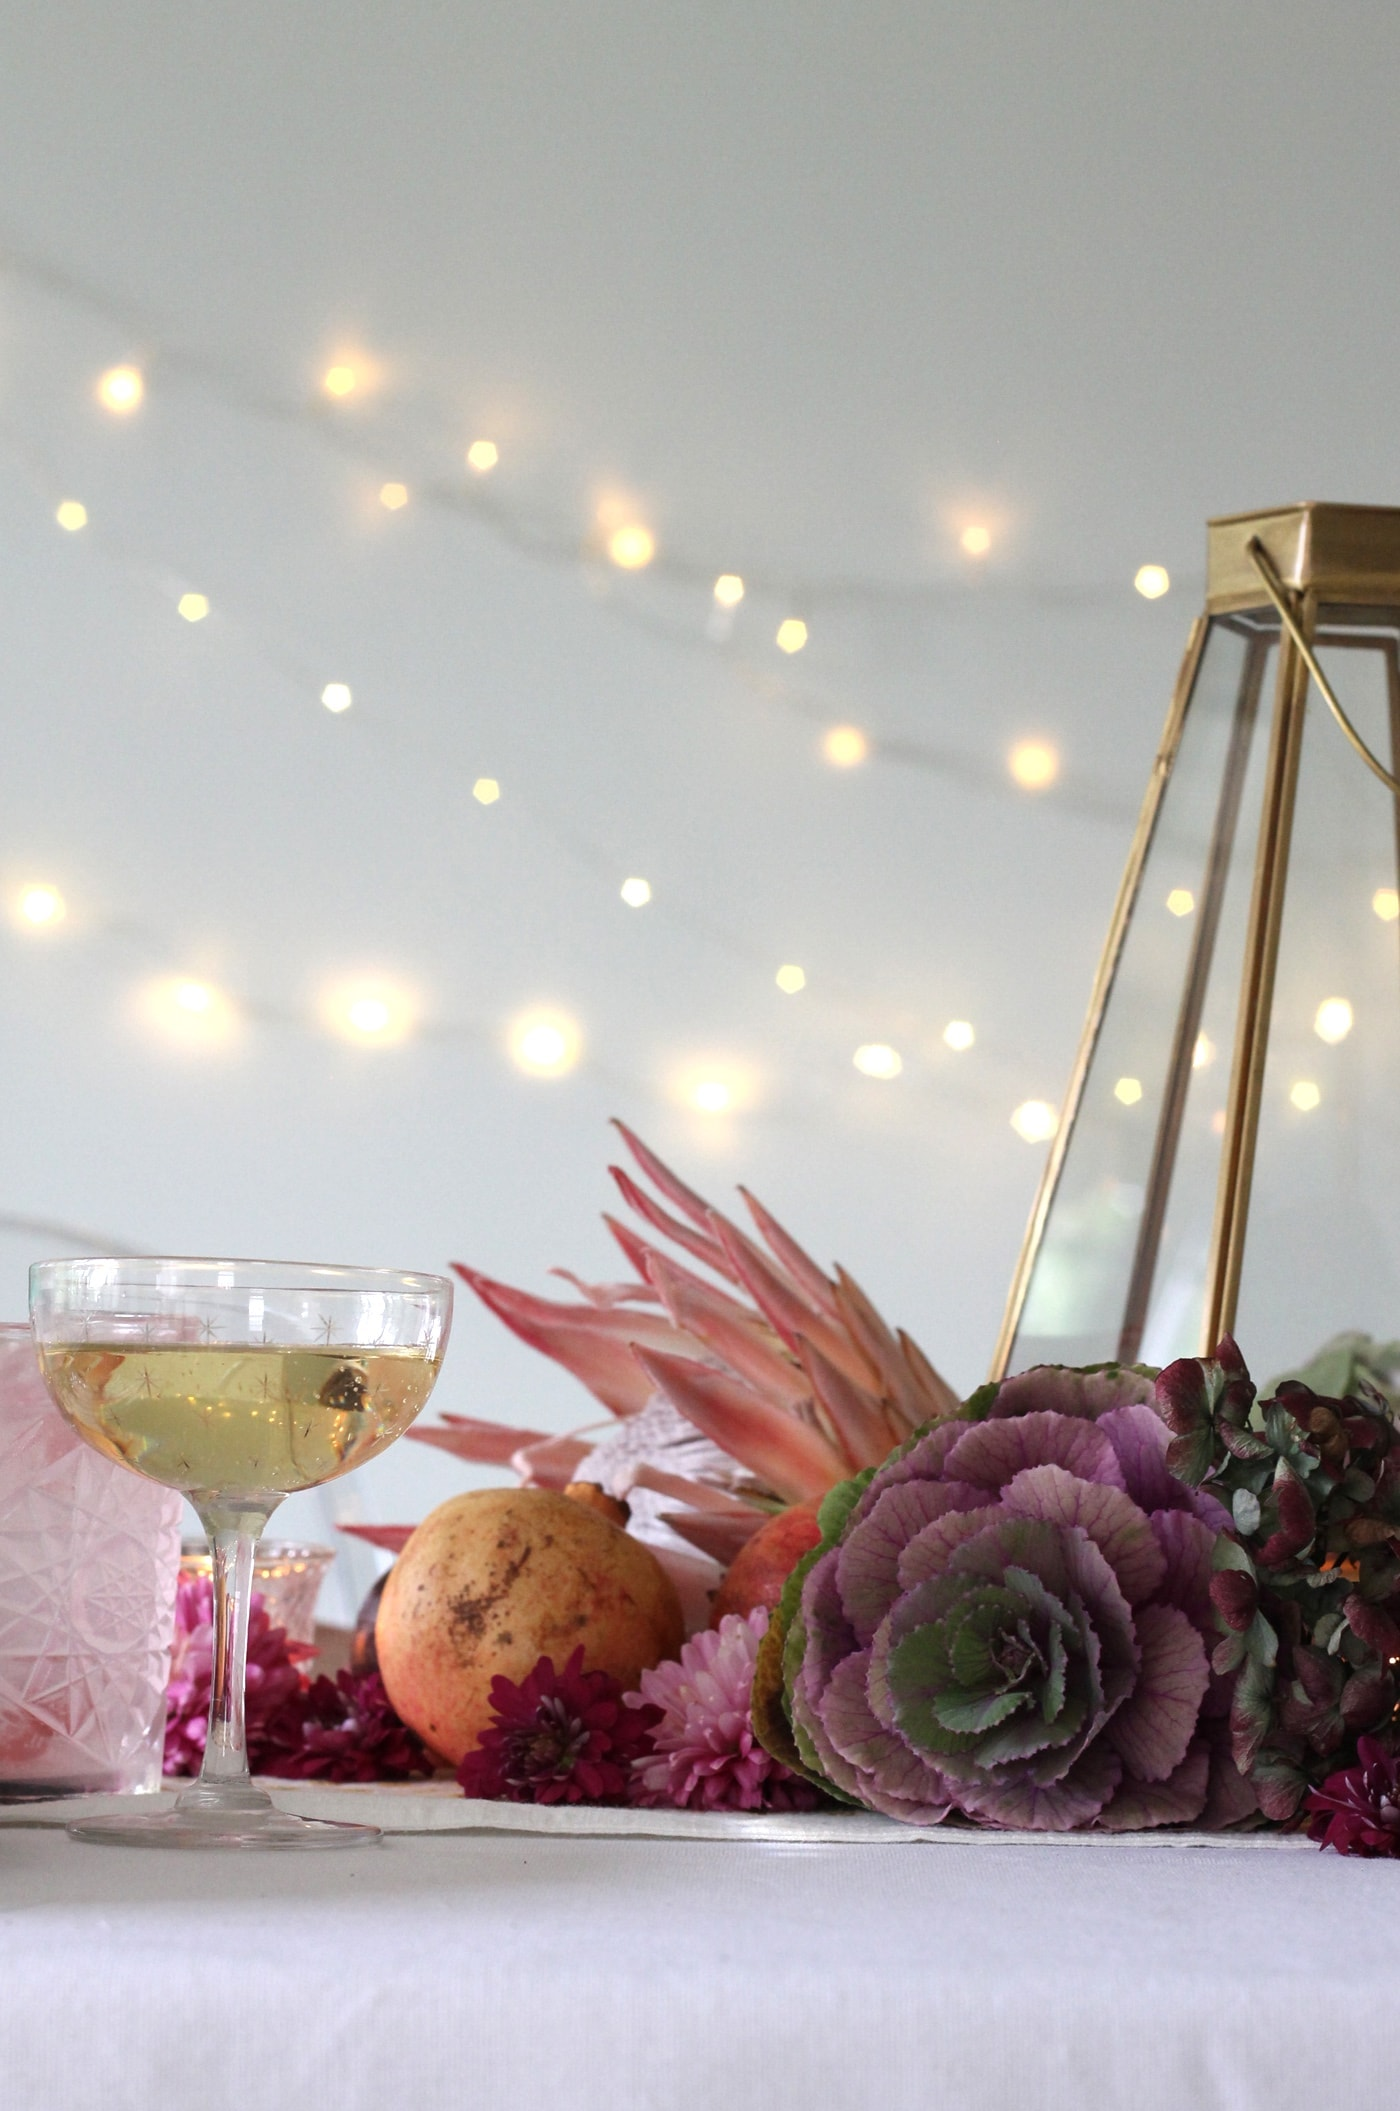 12 styled days of Christmas with West Elm | Lotts and Lots 6